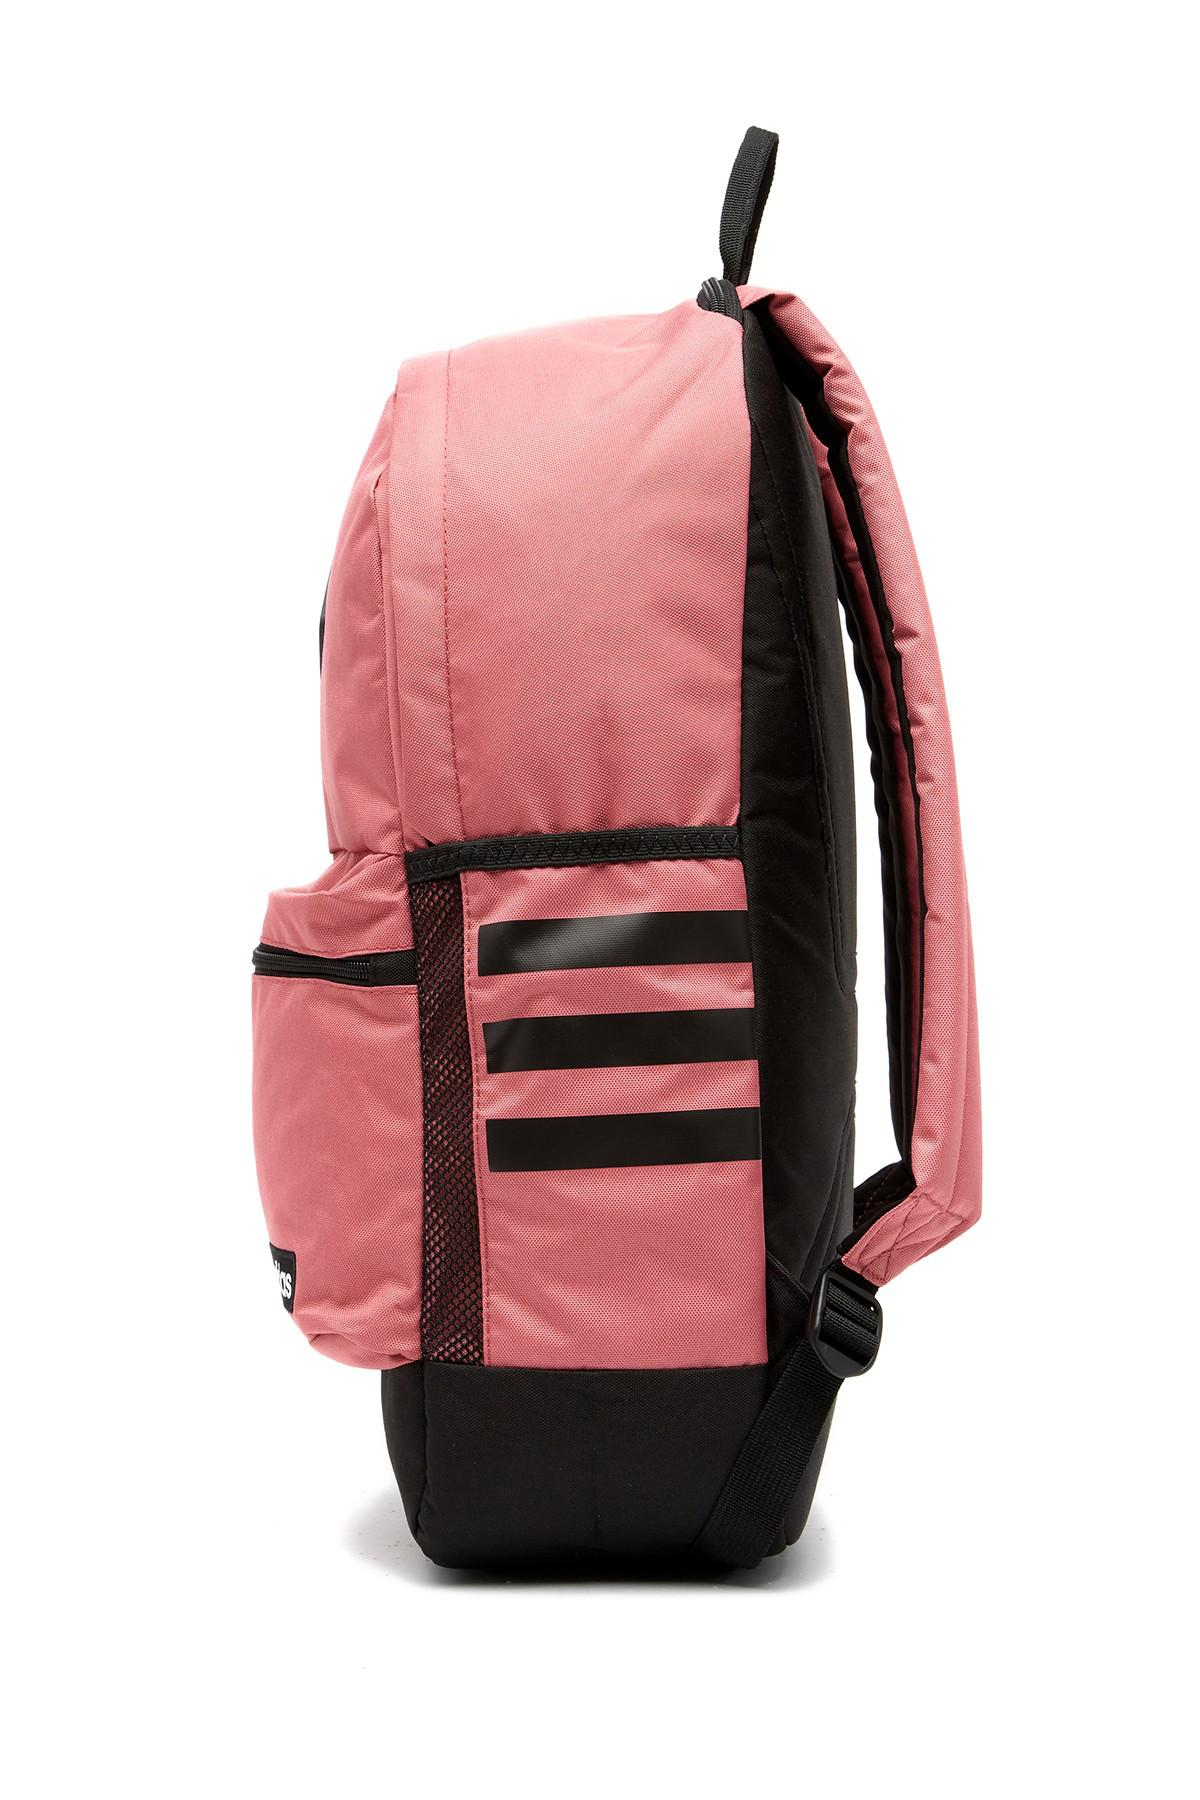 Lyst - adidas Classic 3s Ii Backpack in Pink for Men 35c02e9af5e37